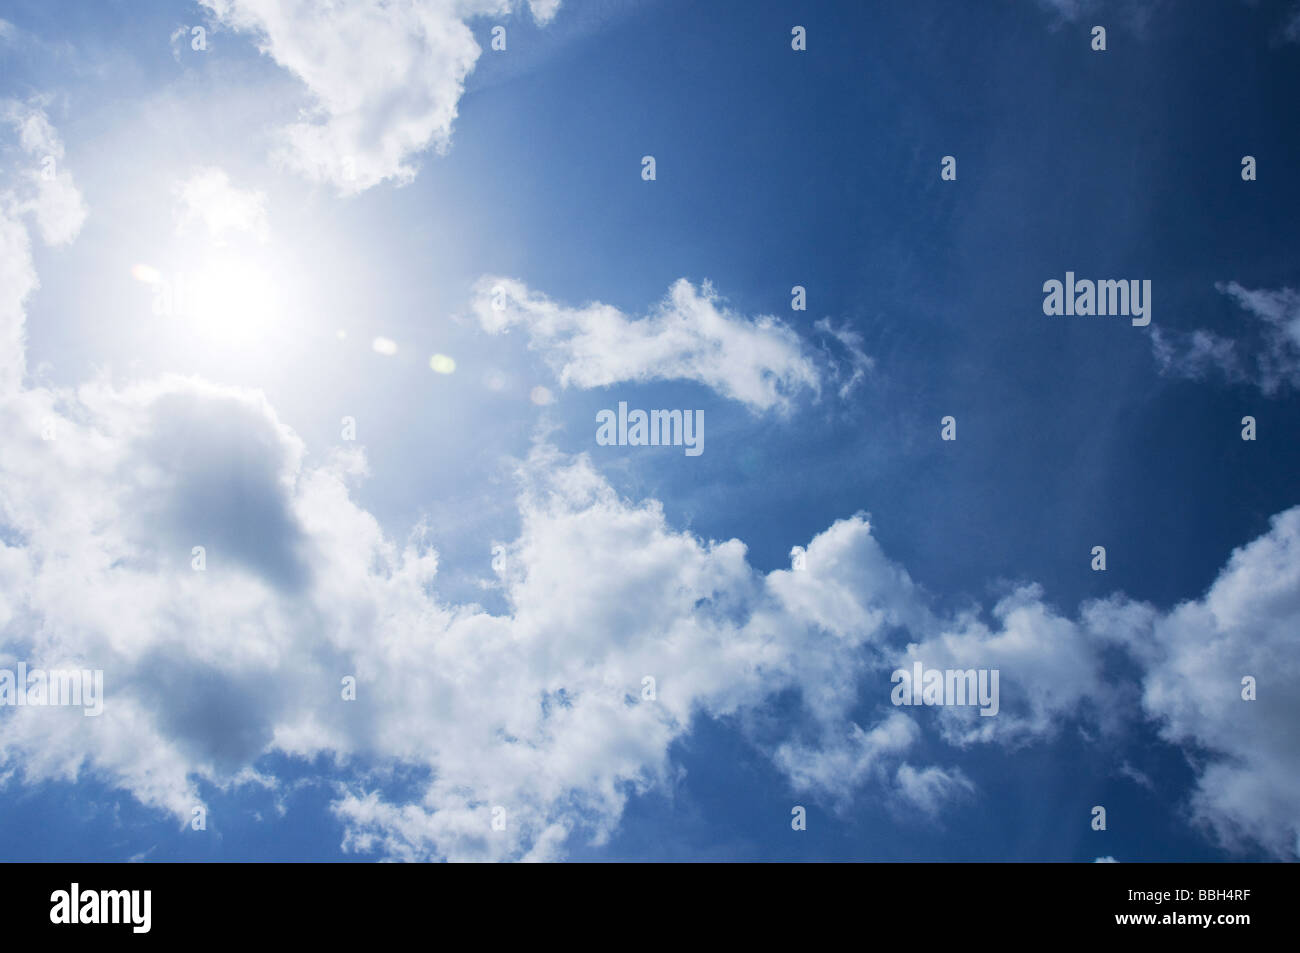 Looking at sun during the day against a blue and cloudy sky Stock Photo